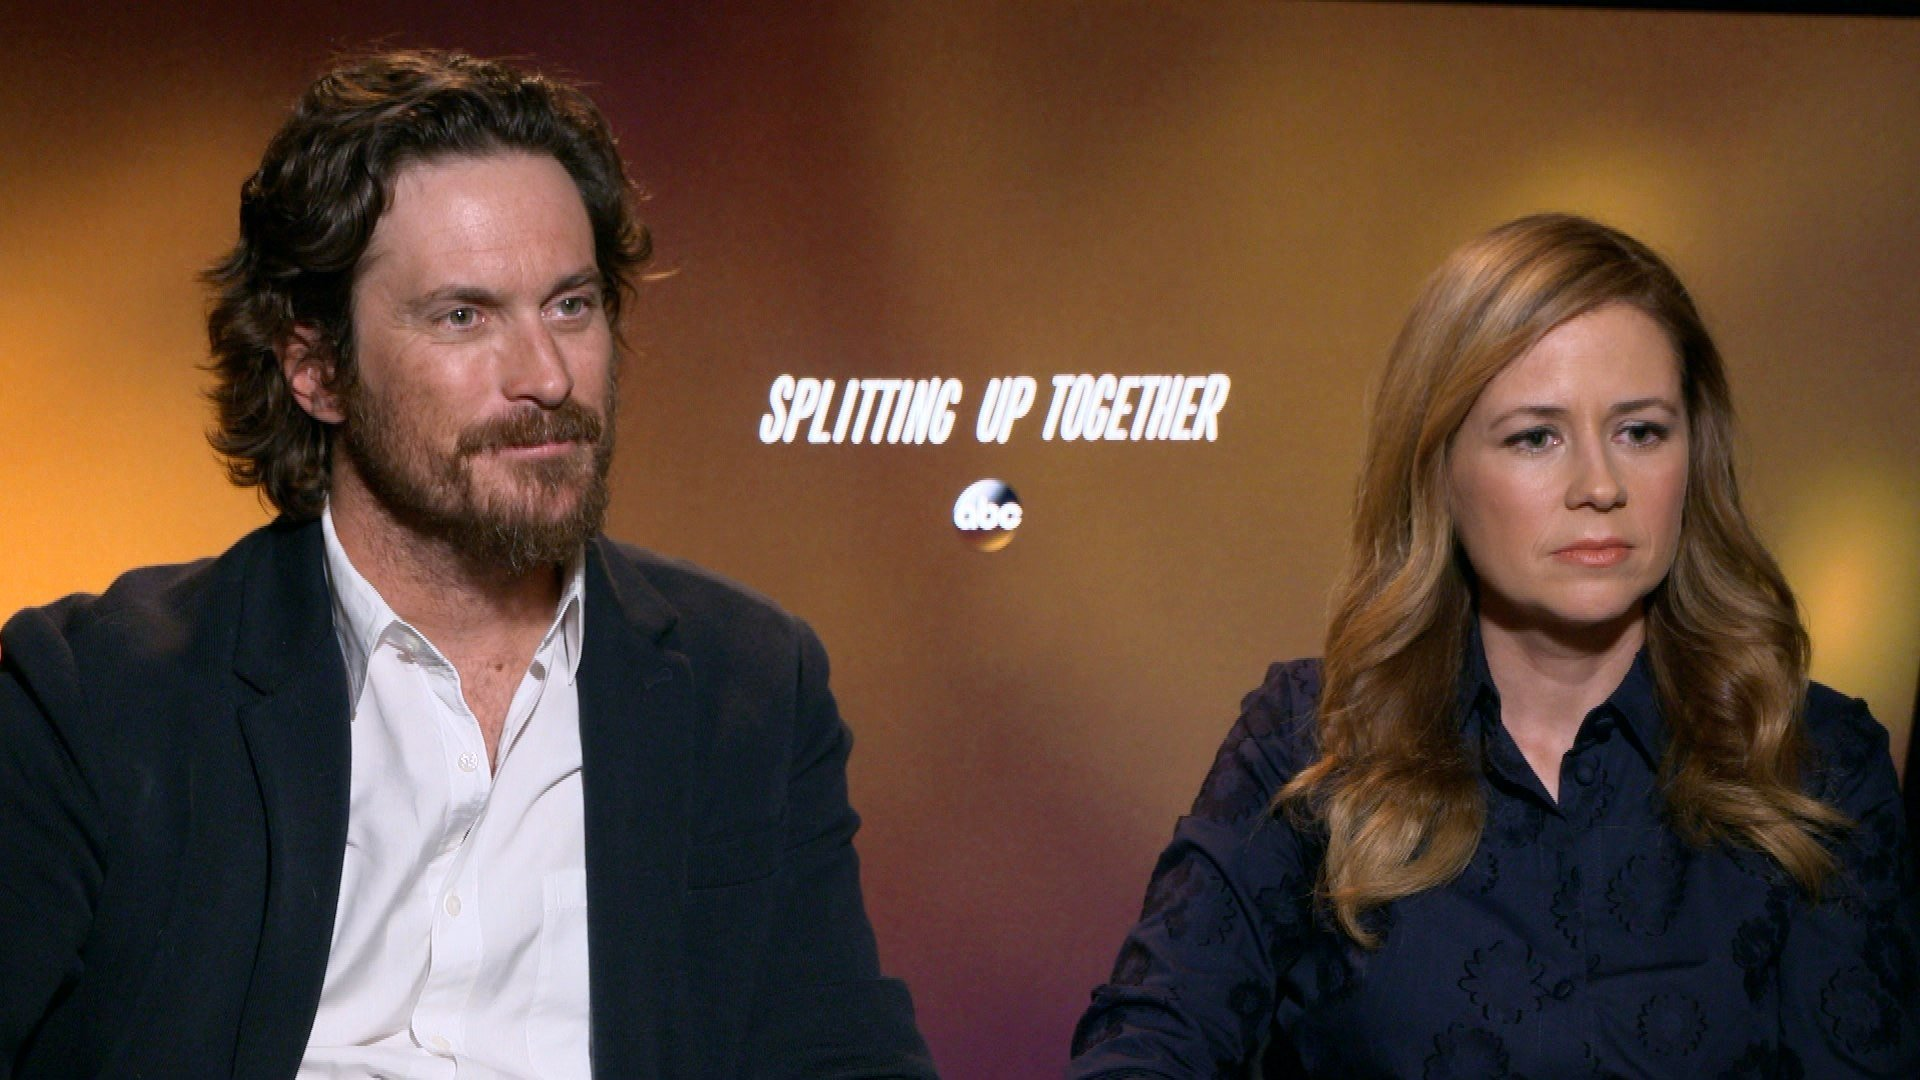 Splitting Up Together Stars Want a Gwyneth Paltrow Cameo   video 1920x1080